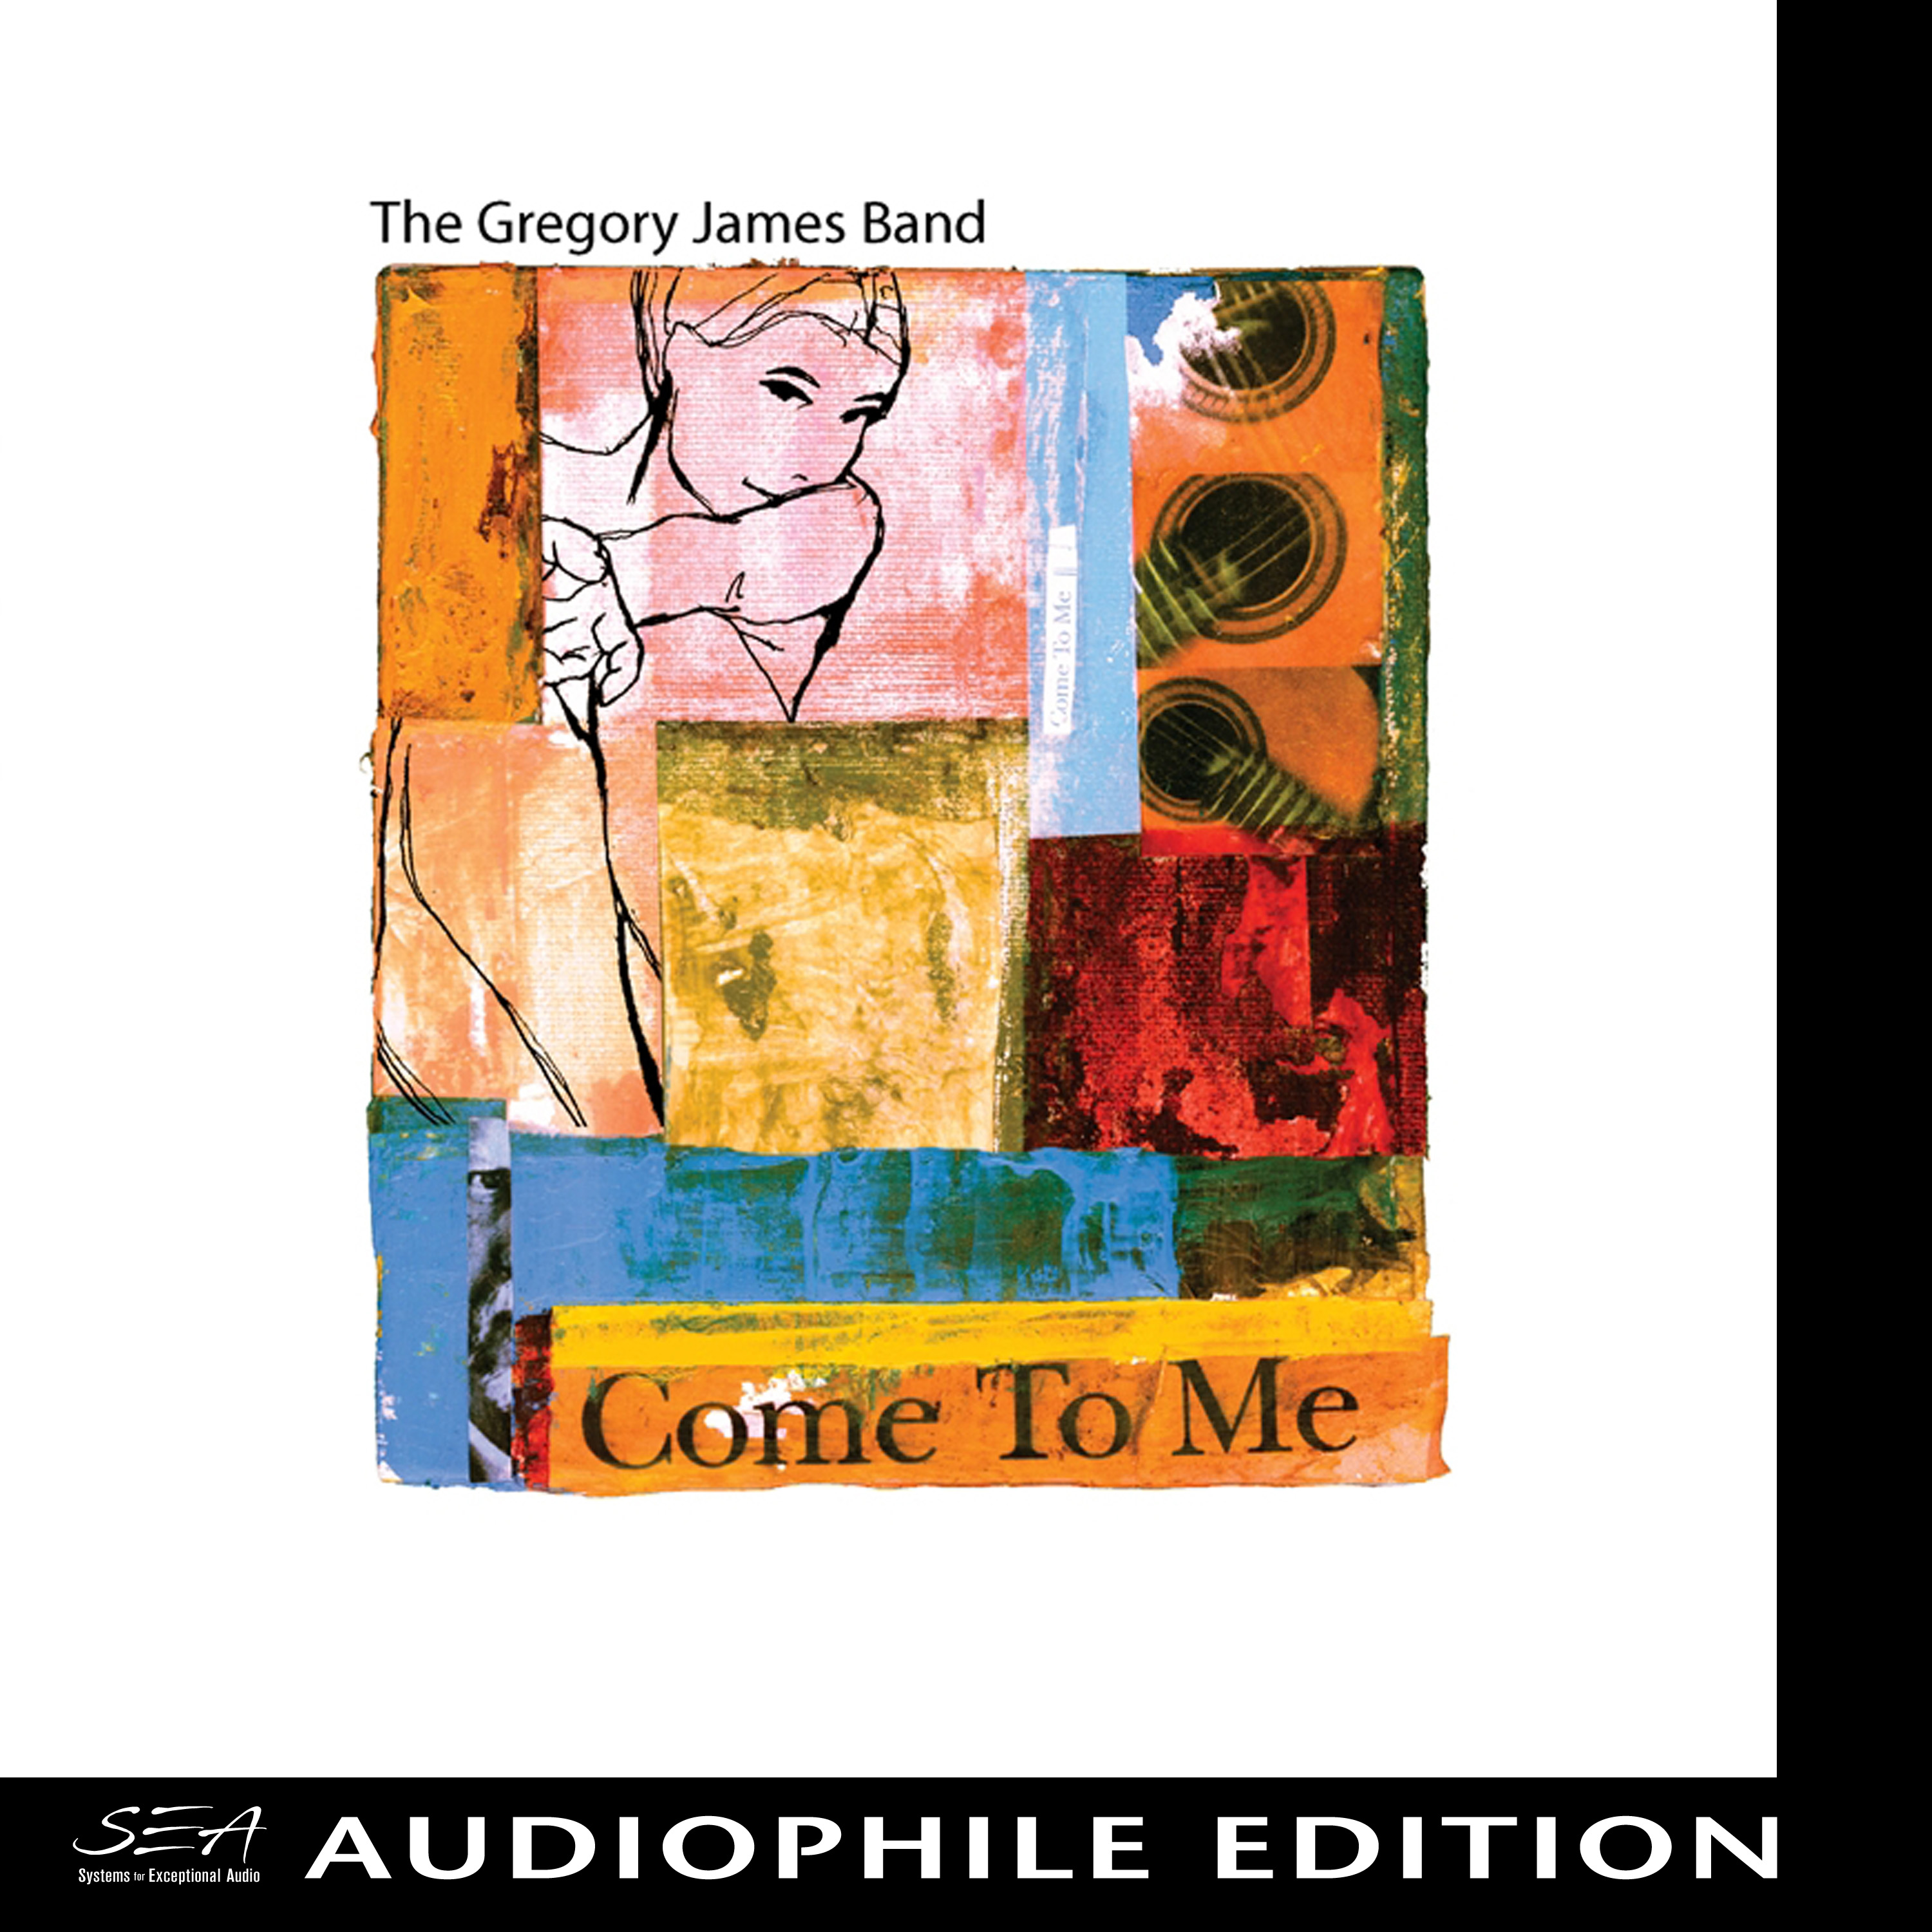 Gregory James - Come To Me - Cover Image